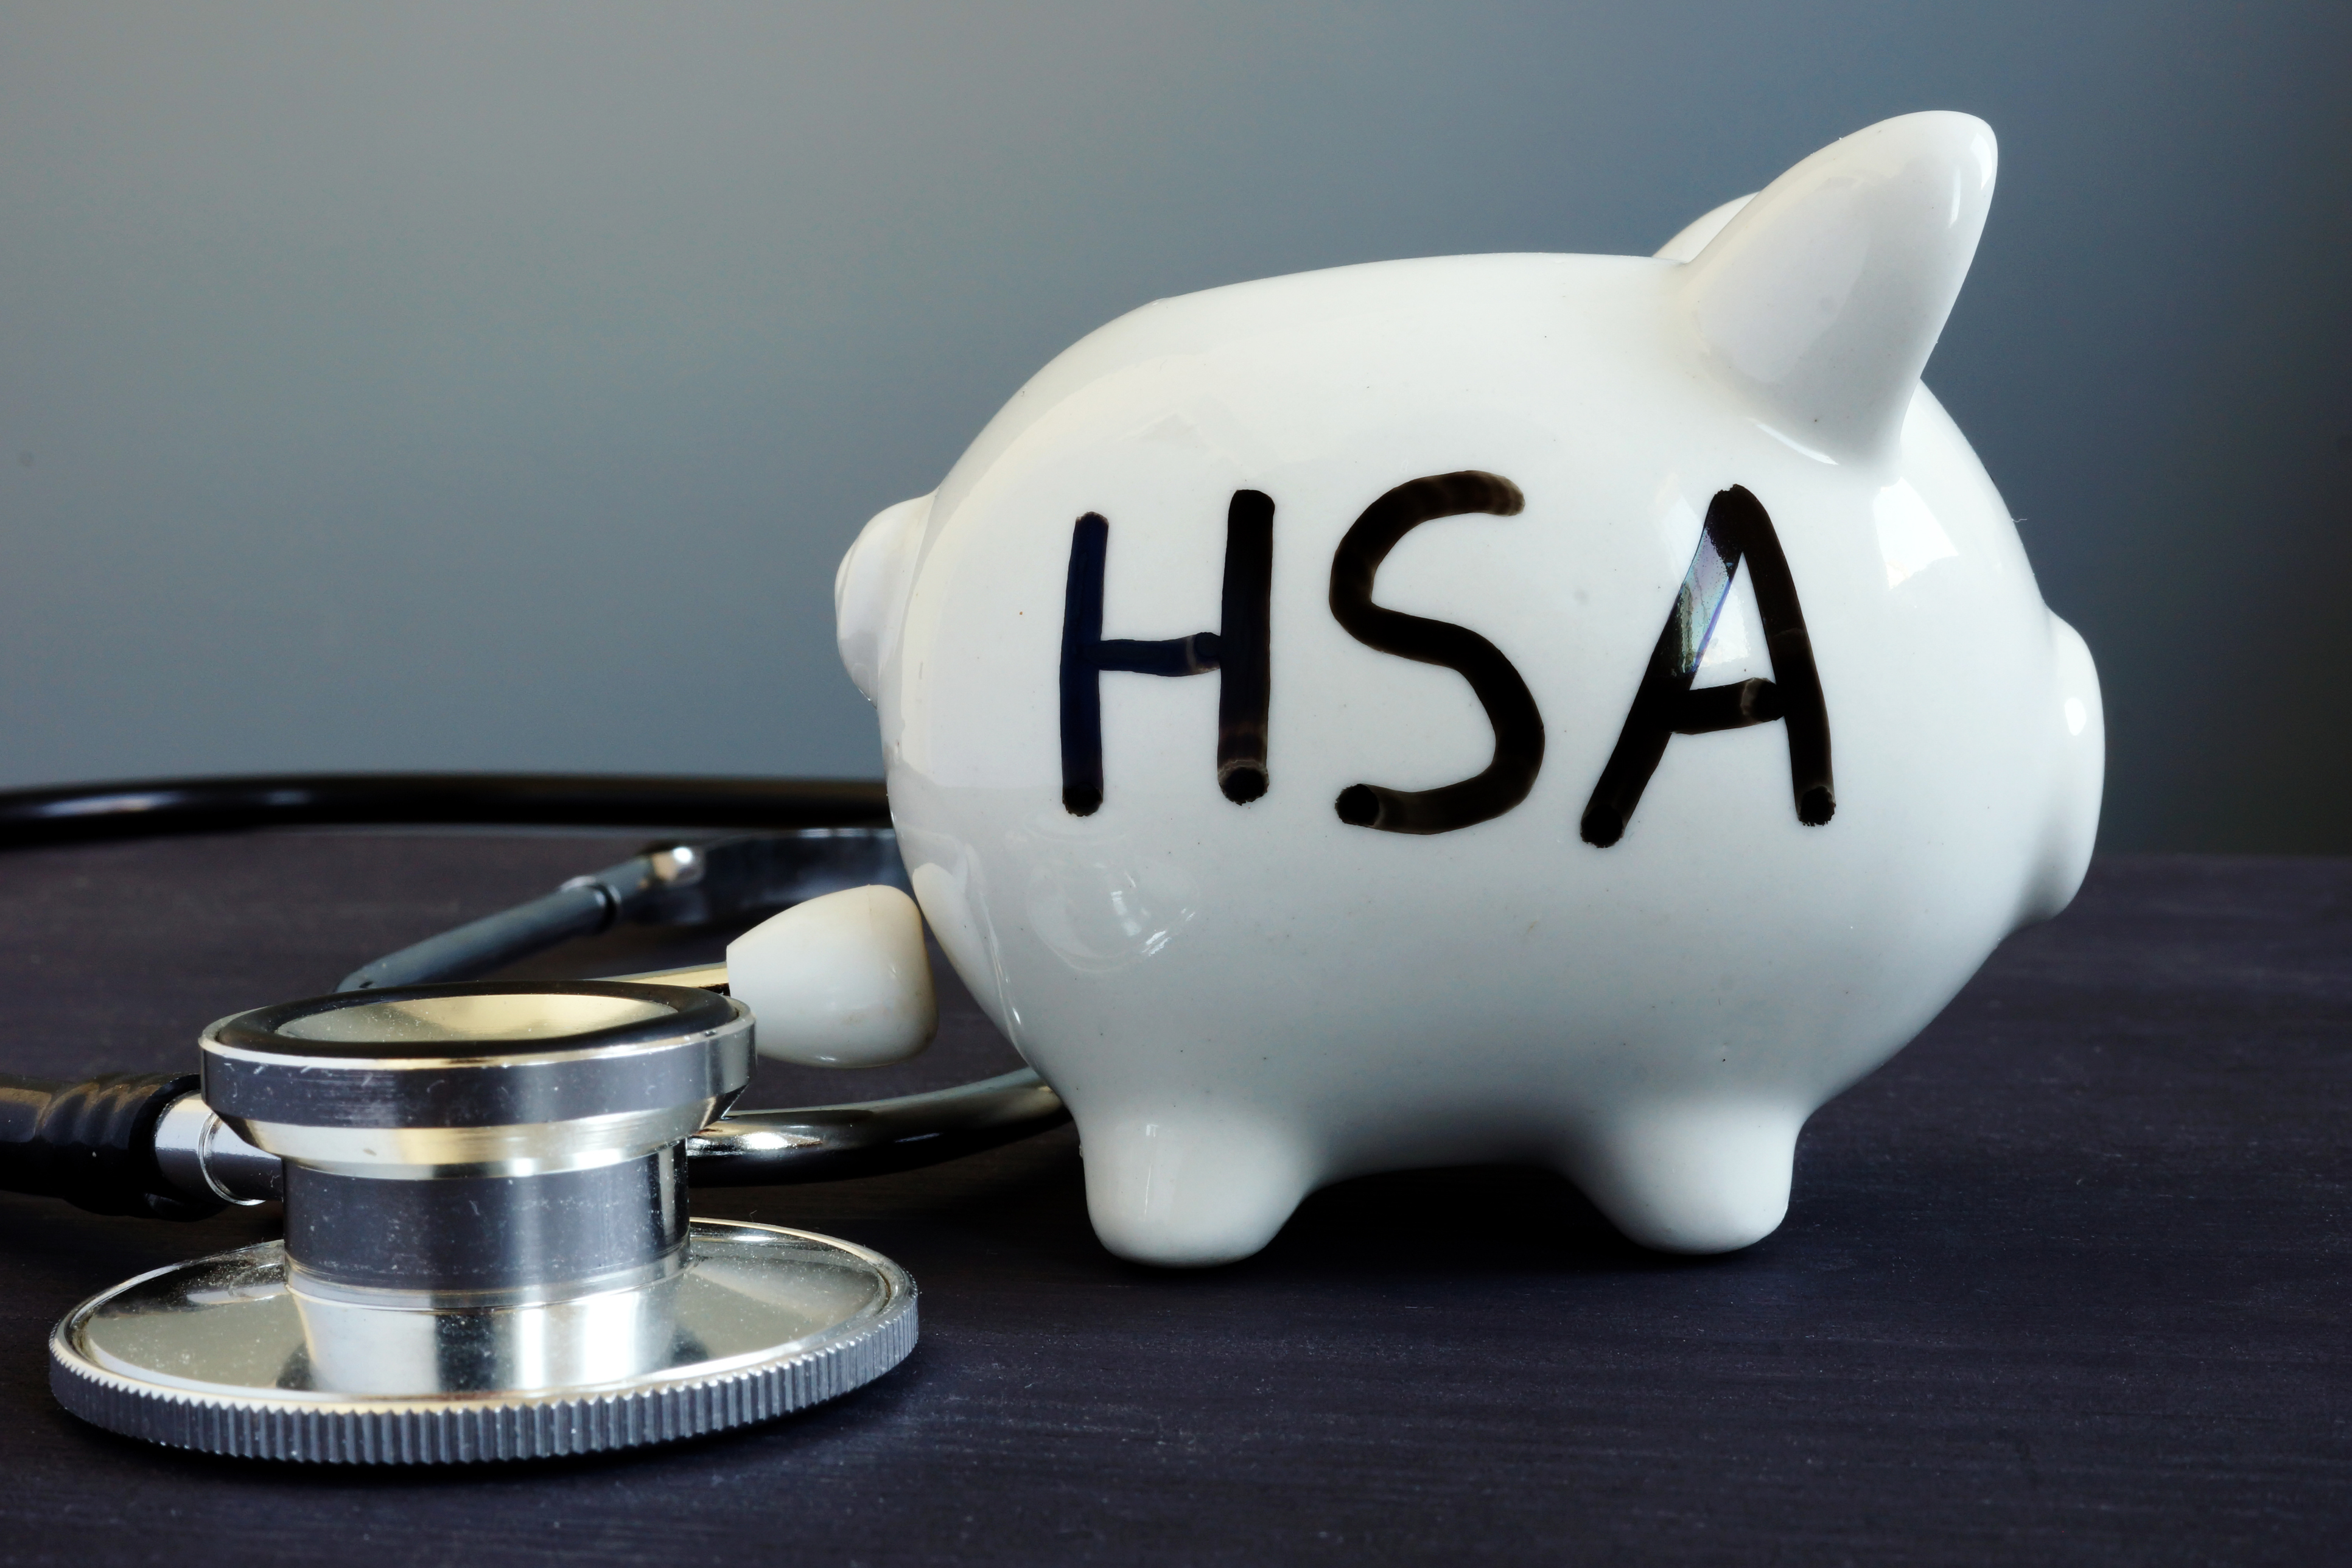 HSA contributions on the rise